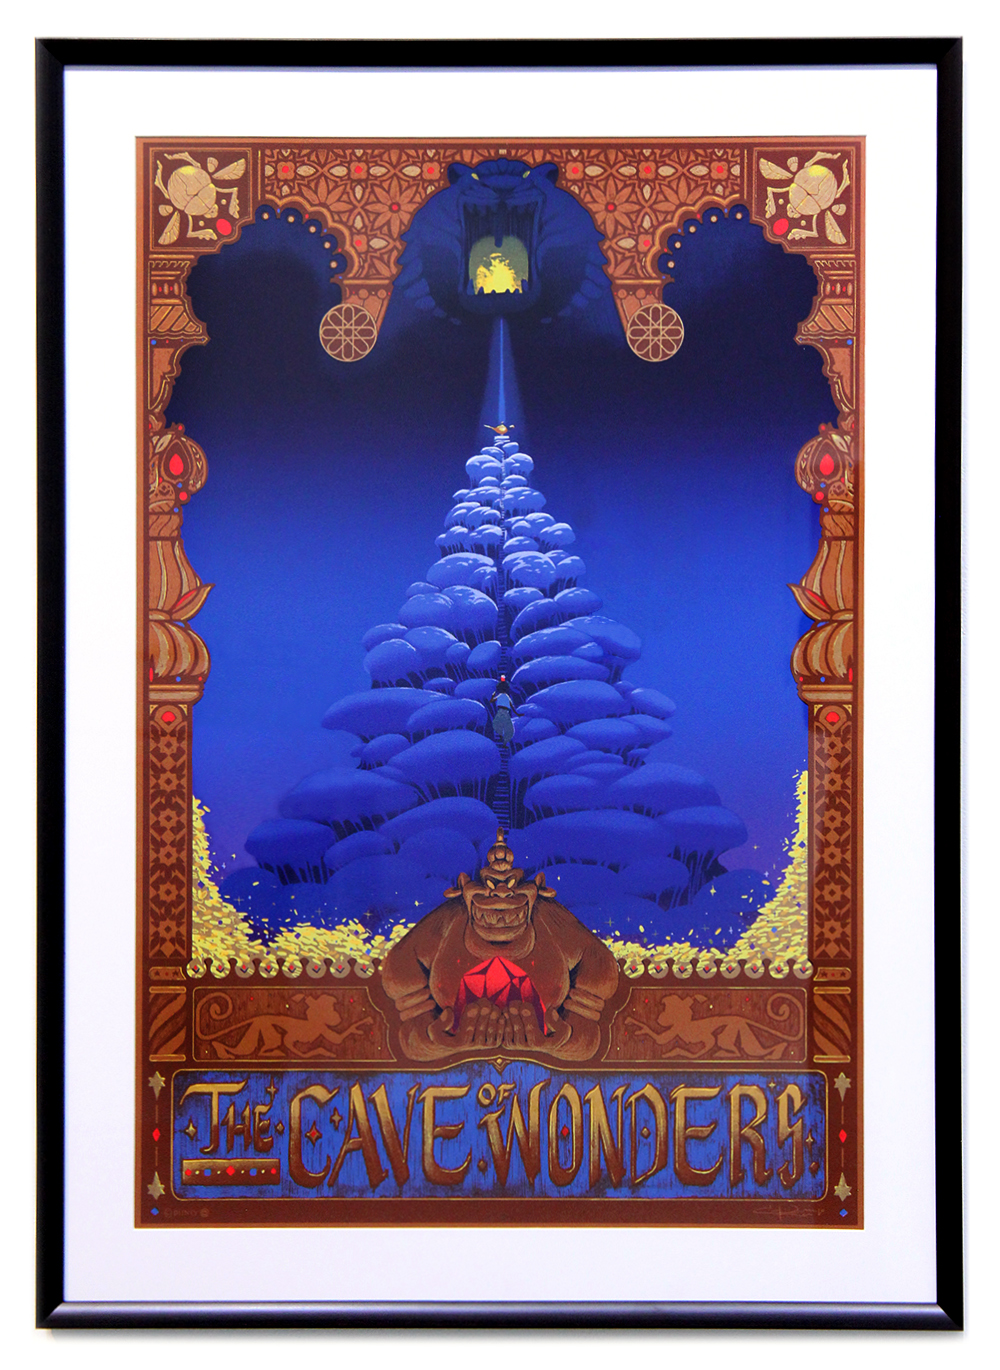 CYCLOPS PRINT WORKS: THE CAVE OF WONDERS (FRAMED PP #1), Grace Kum